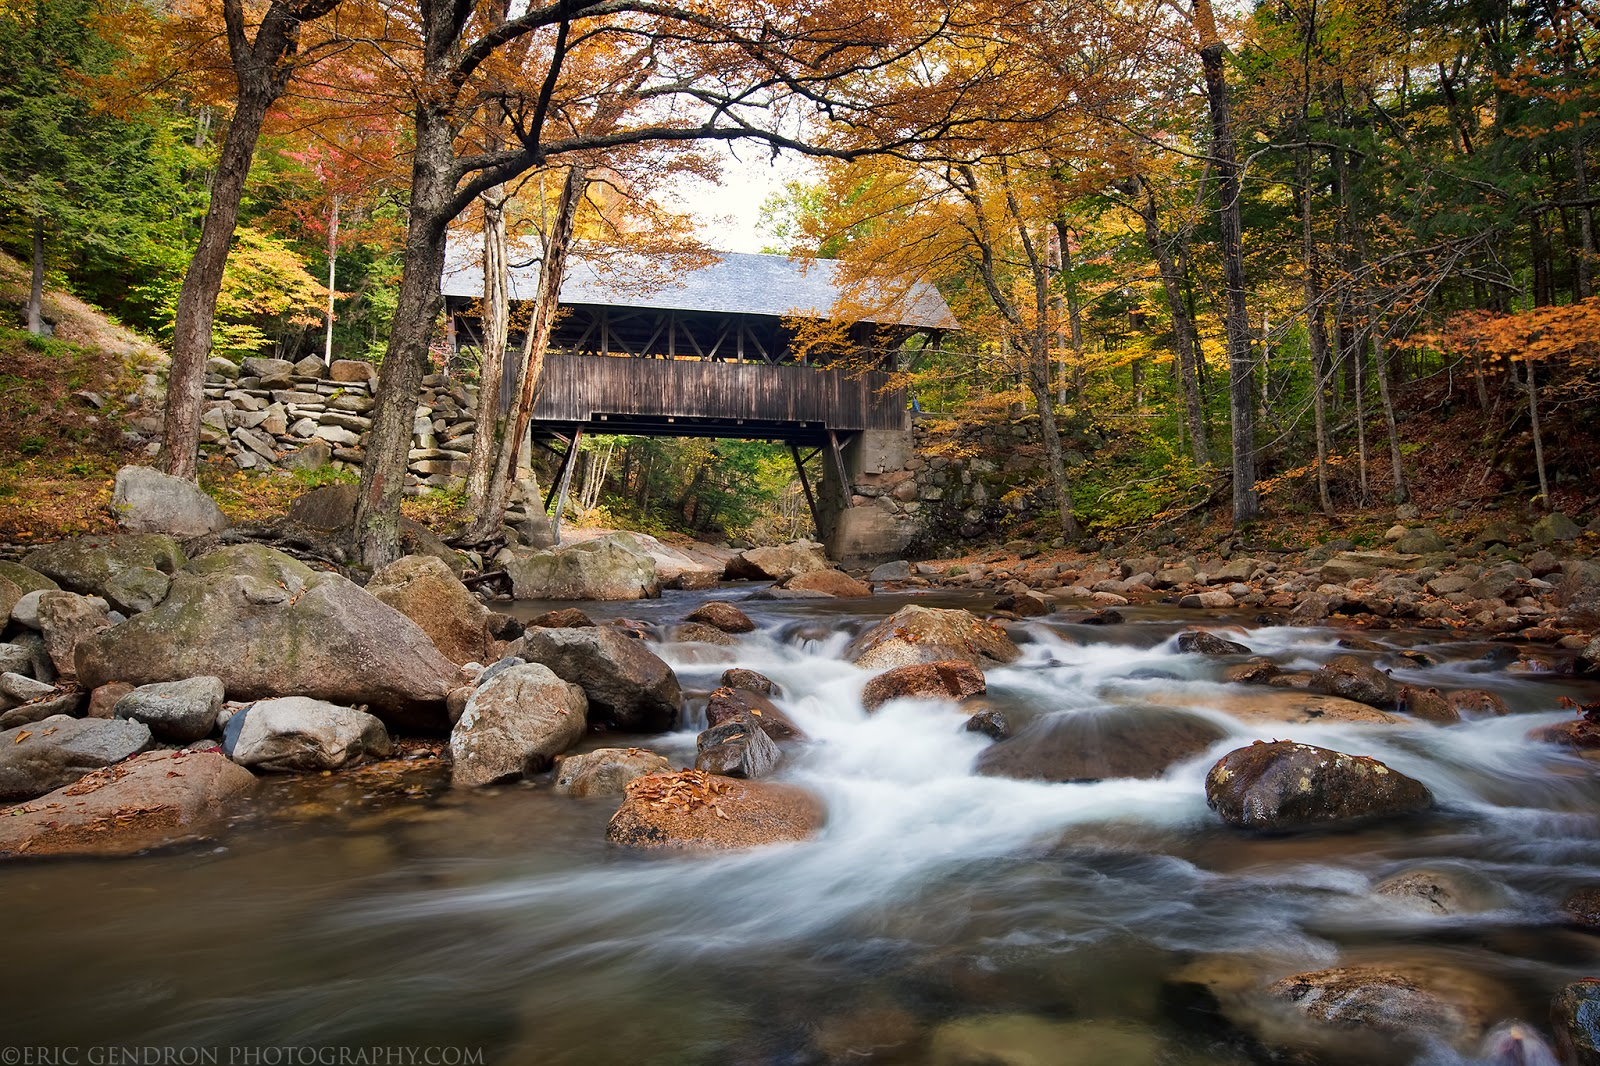 autumn foliage at the Flume Covered Bridge